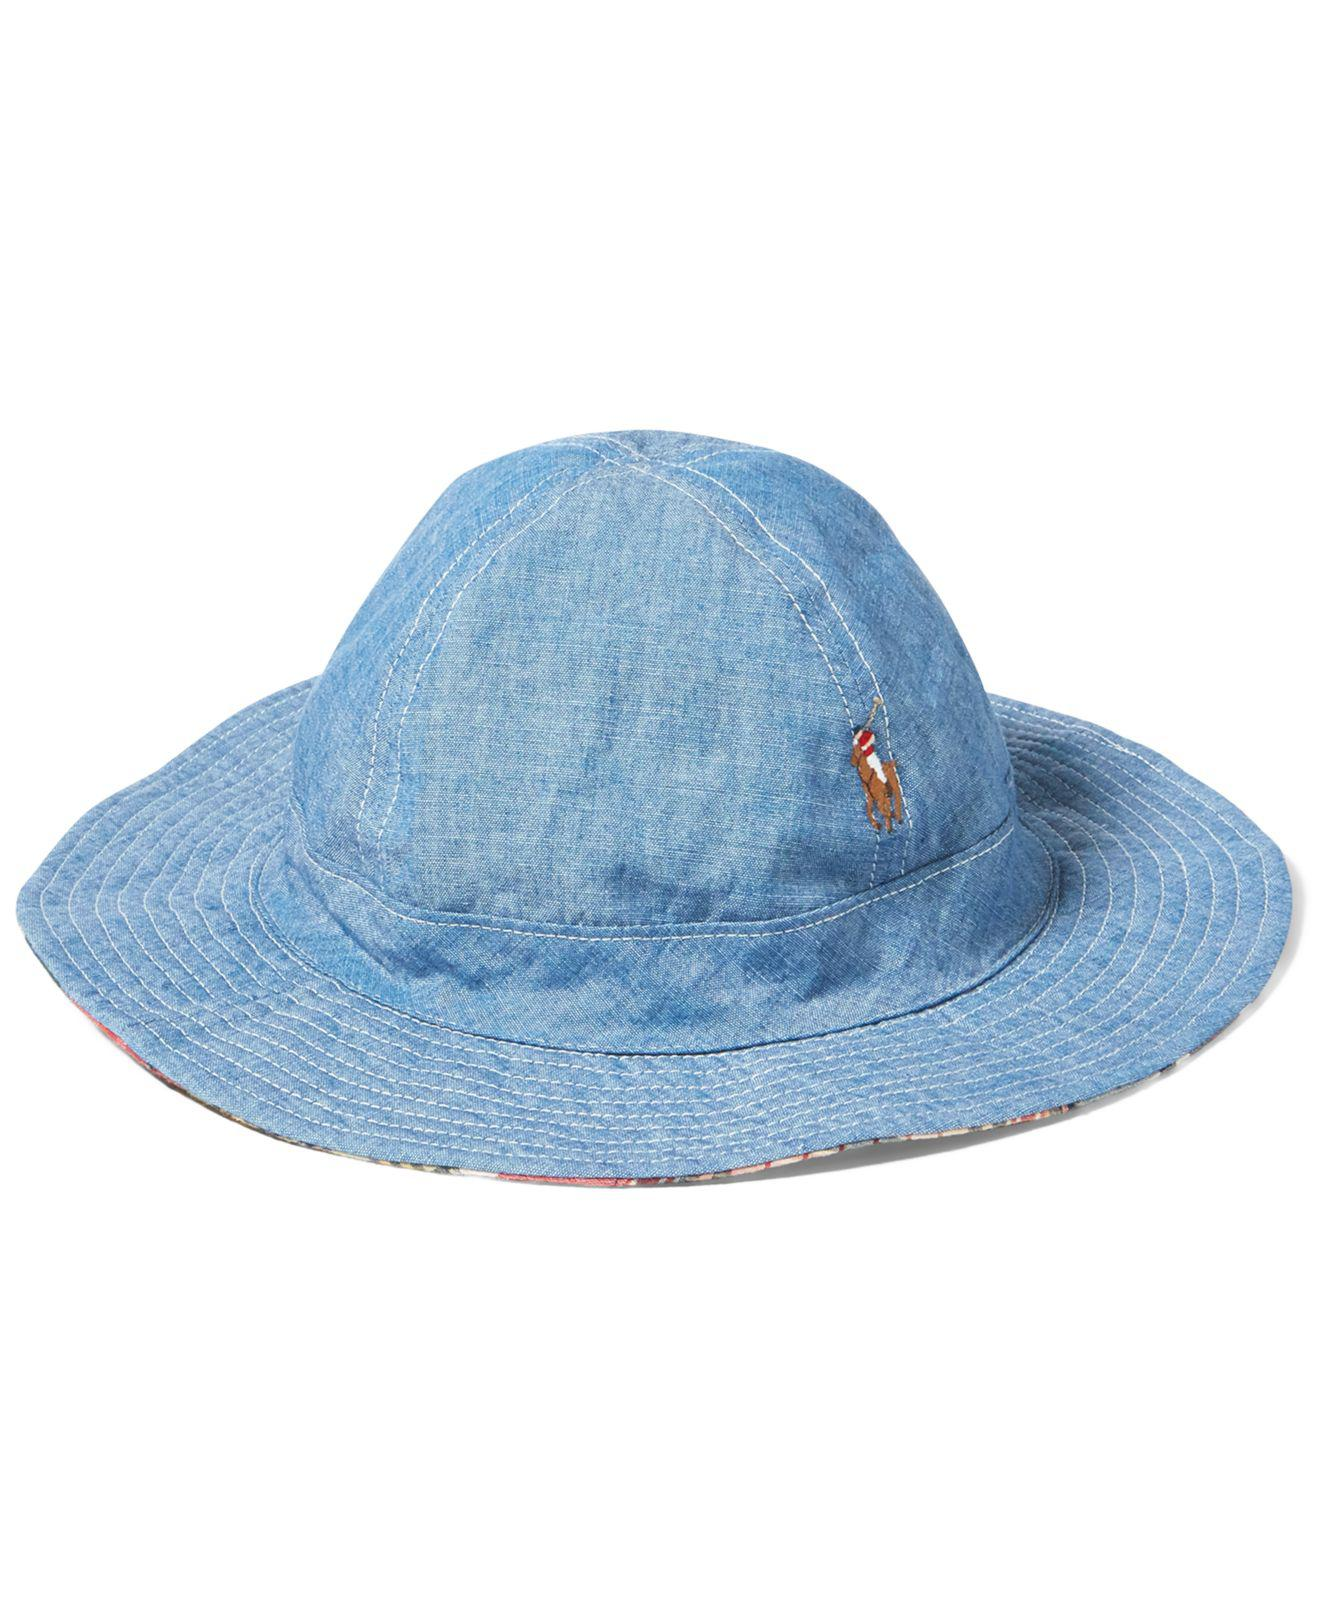 249b6d8c8ab ... outlet on sale edddb 30569 Lyst - Polo Ralph Lauren Mens Reversible  Cotton Bucket Hat i ...